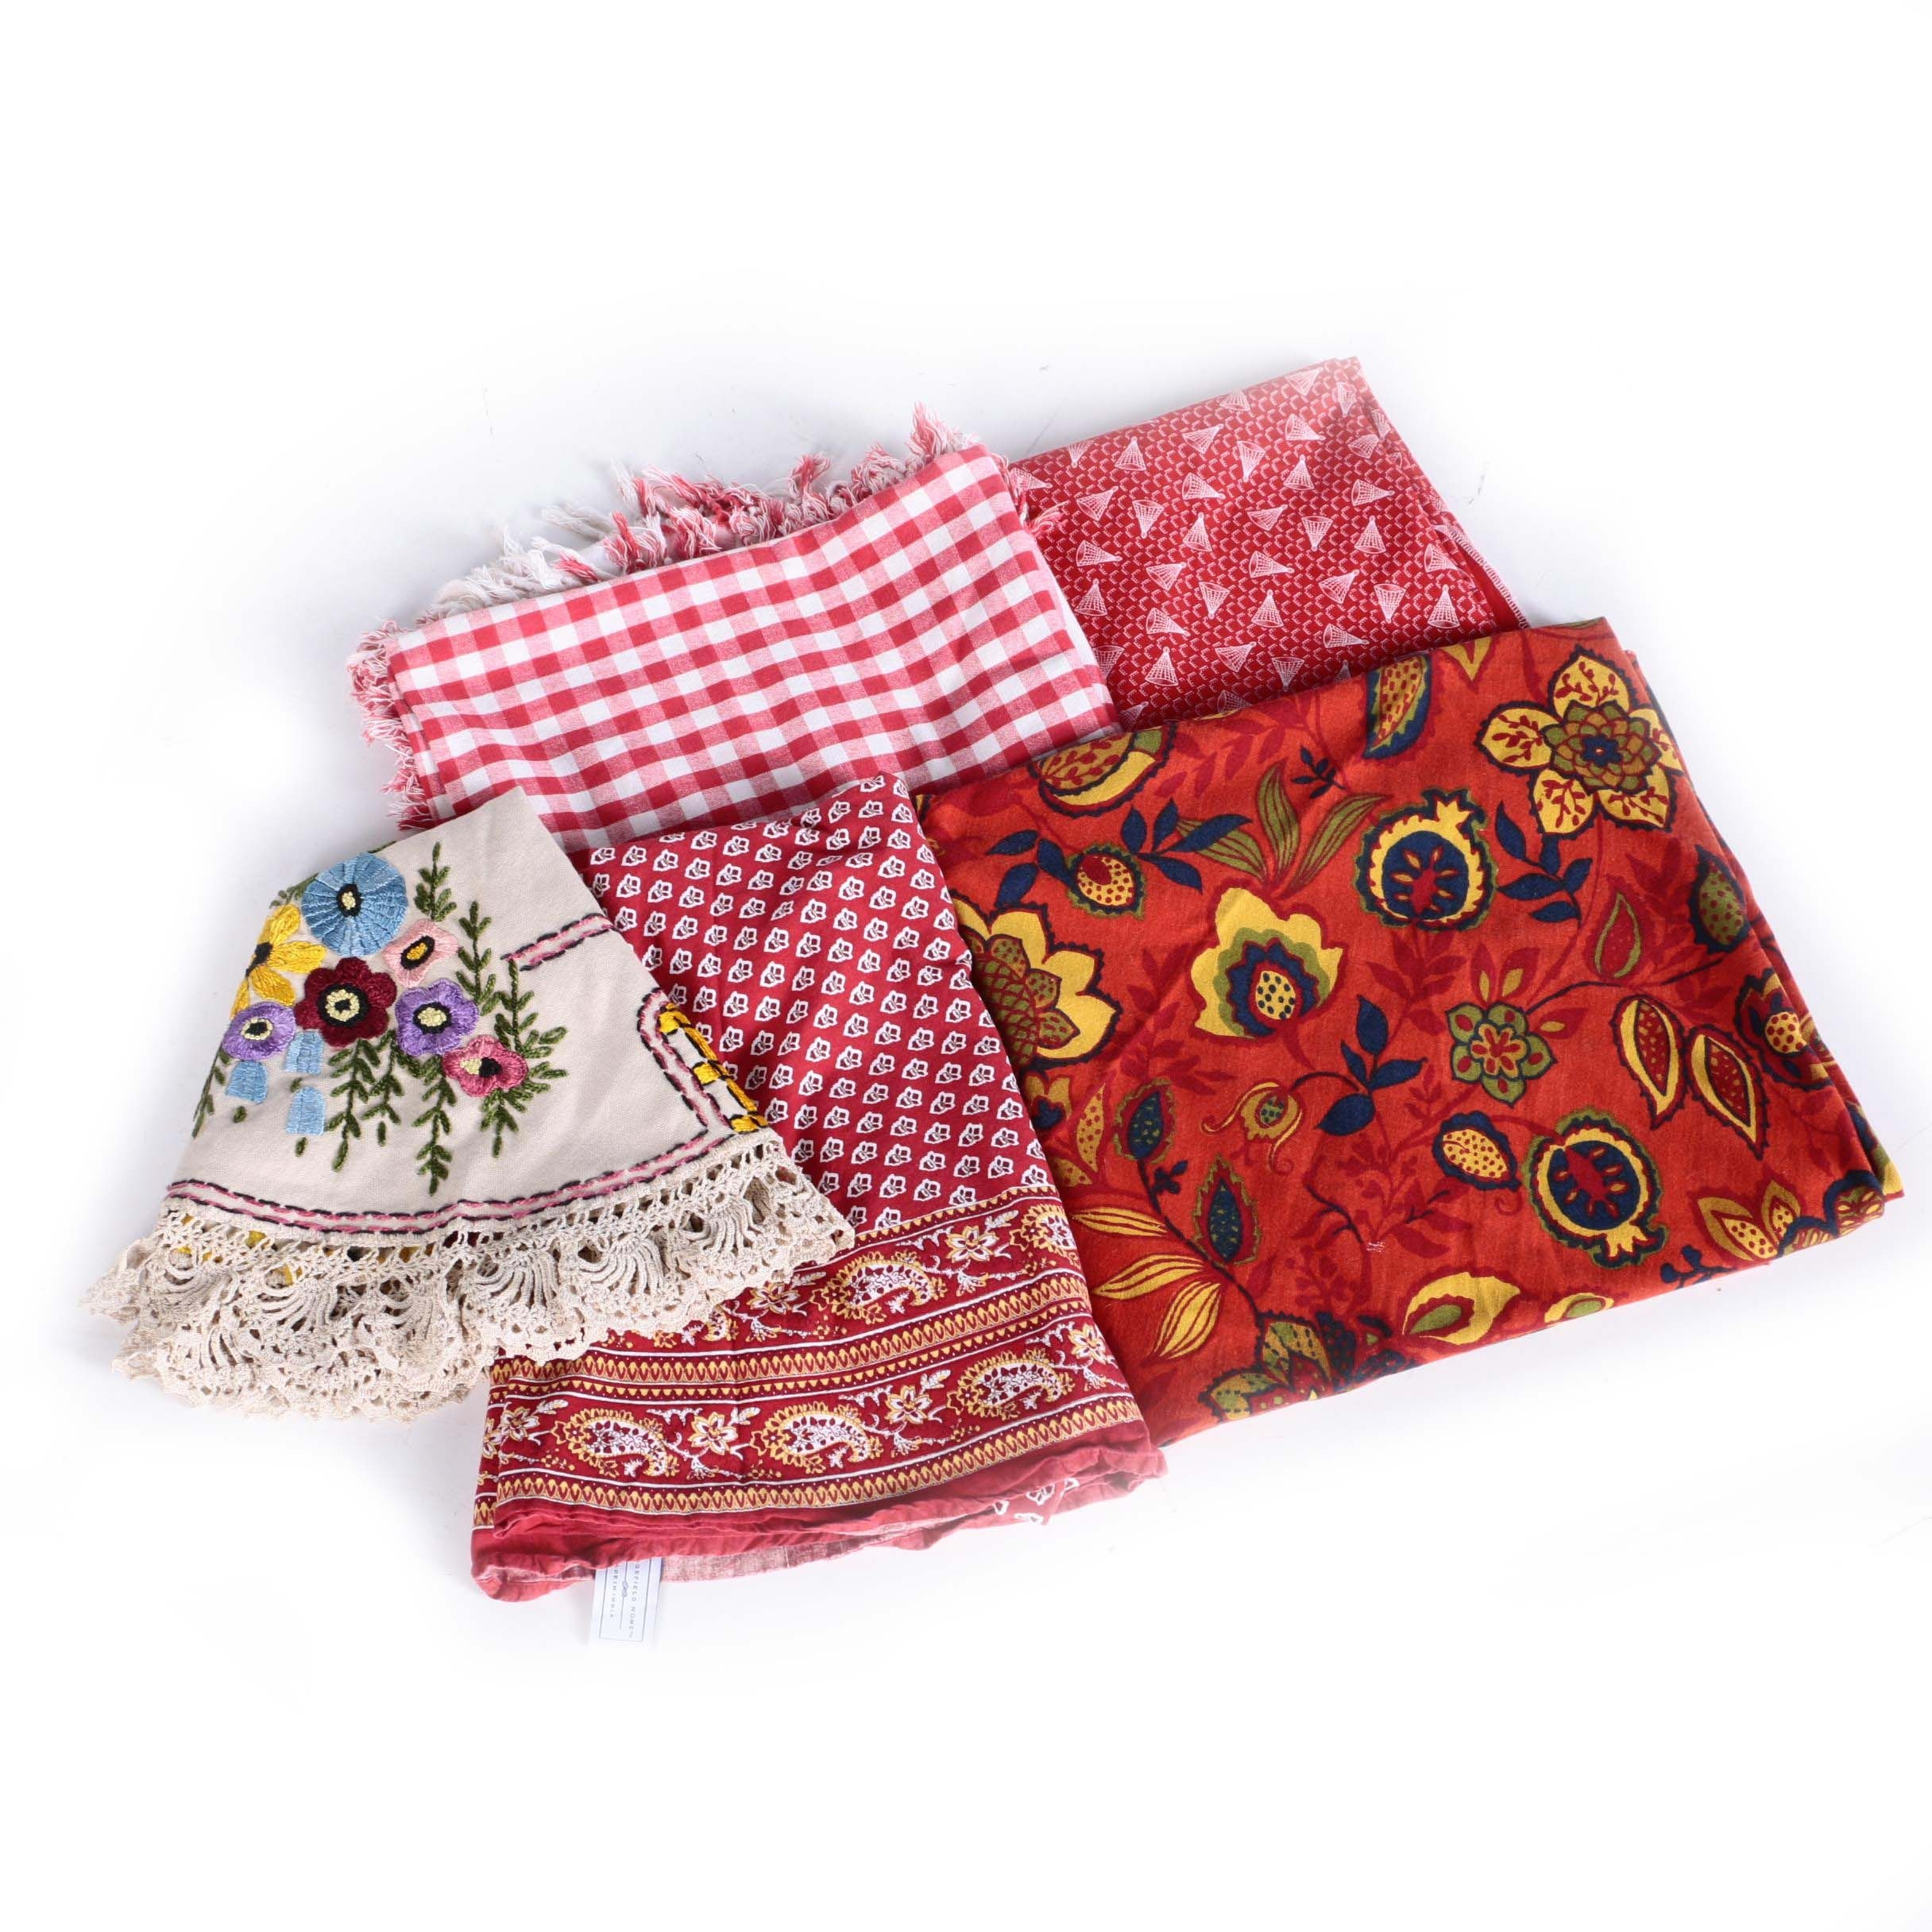 Patterned Table Linens